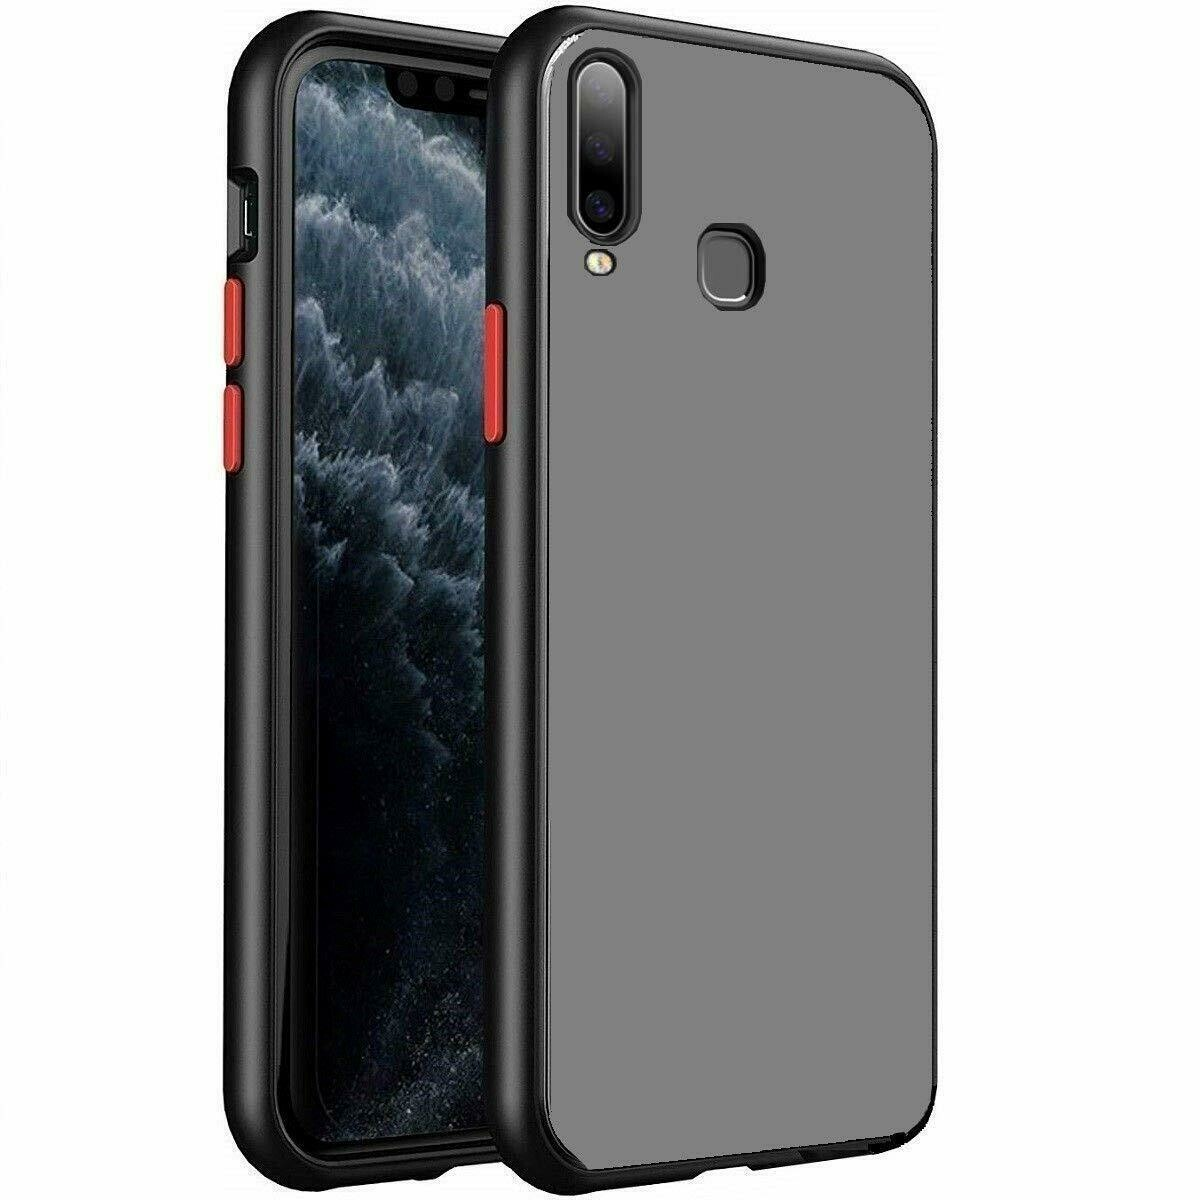 Translucent Hard Matte Finish Reinforced Corners (Shockproof and Anti-Drop Protection) Smoke Cover for Vivo Z1 Pro (Black)